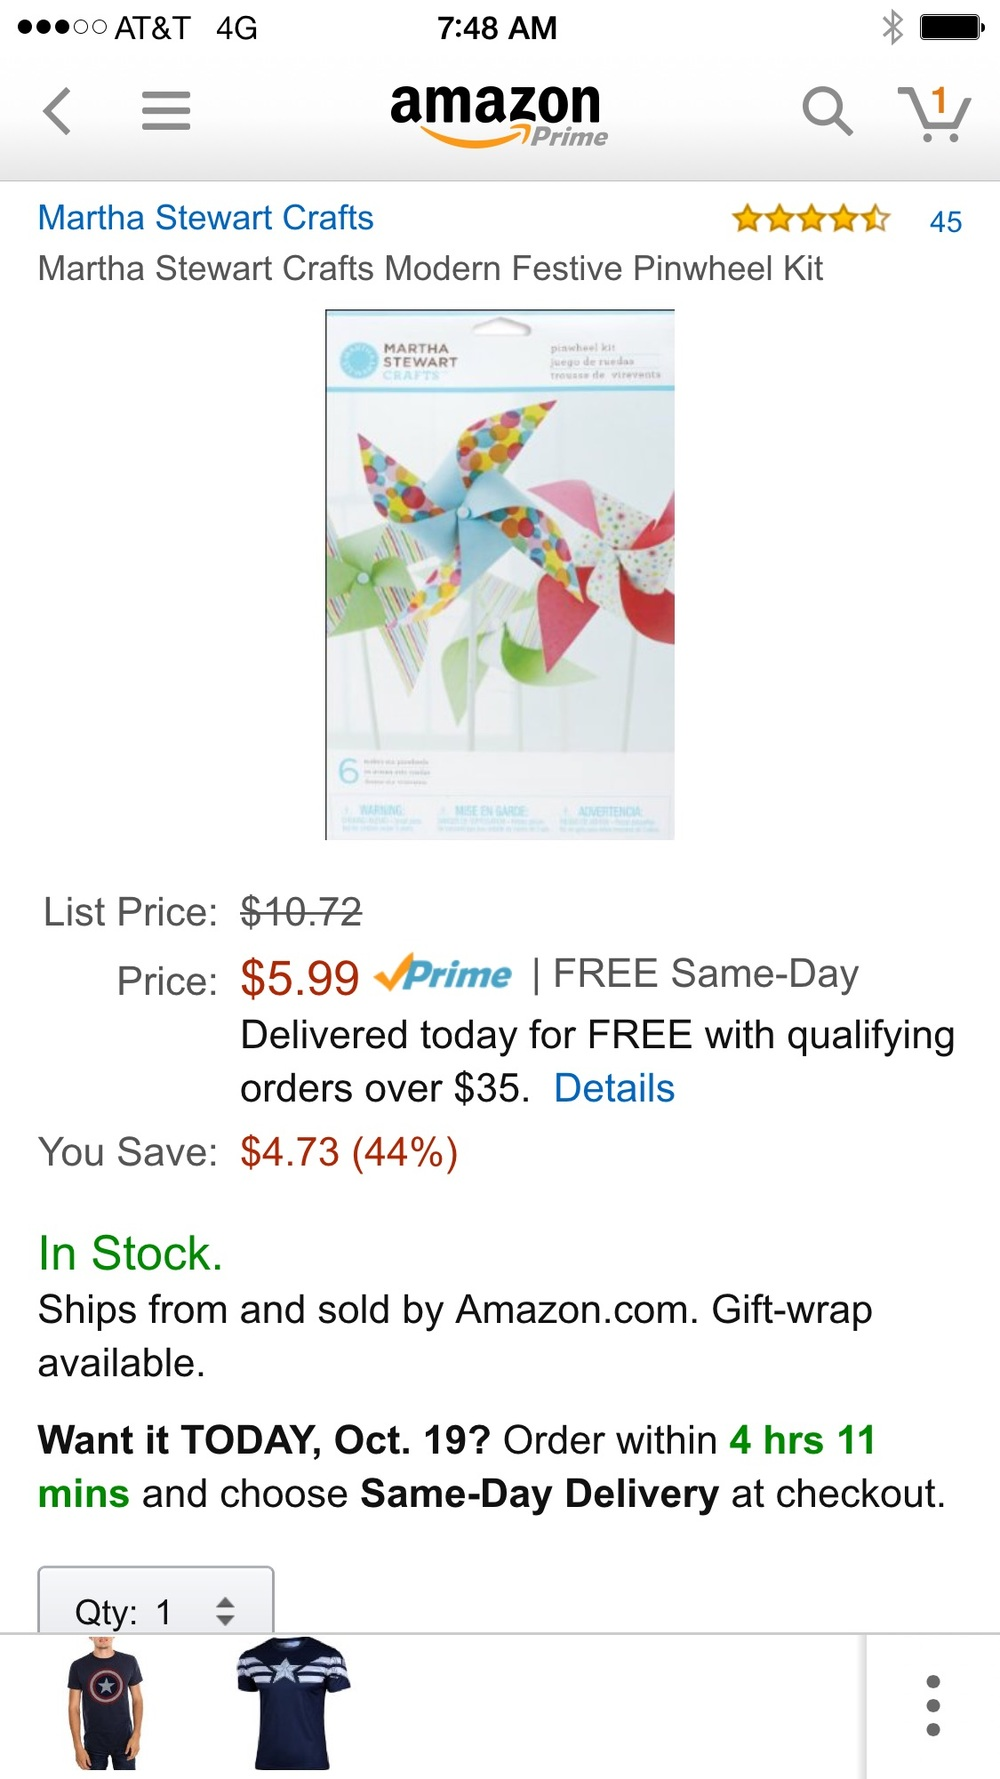 Apologies for the screen shot, blogging from my phone right now!http://www.amazon.com/Martha-Stewart-Crafts-Festive-Pinwheel/dp/B0052UO6W6/ref=sr_1_1?ie=UTF8&qid=1445349897&sr=8-1&keywords=pinwheel+martha+stewart